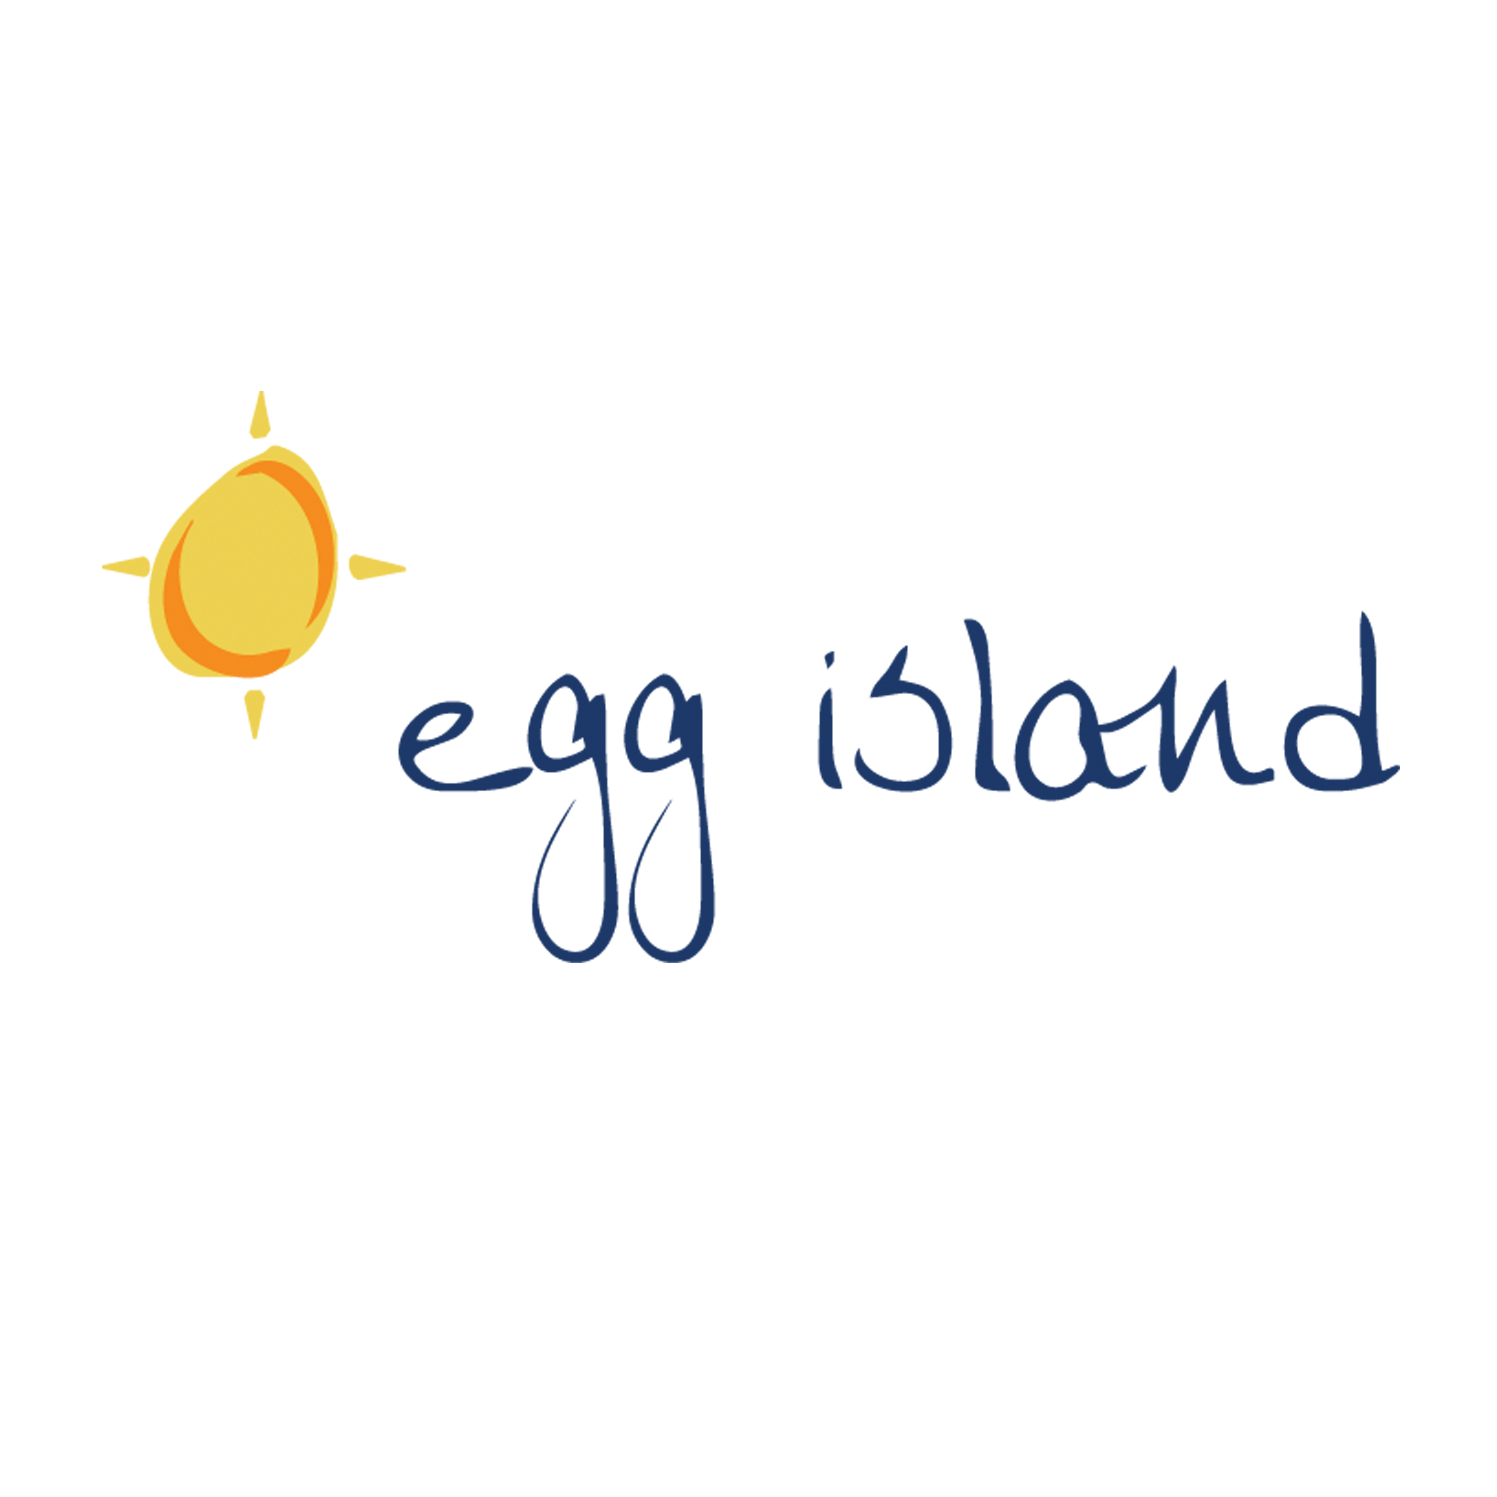 Egg Island Logo Design